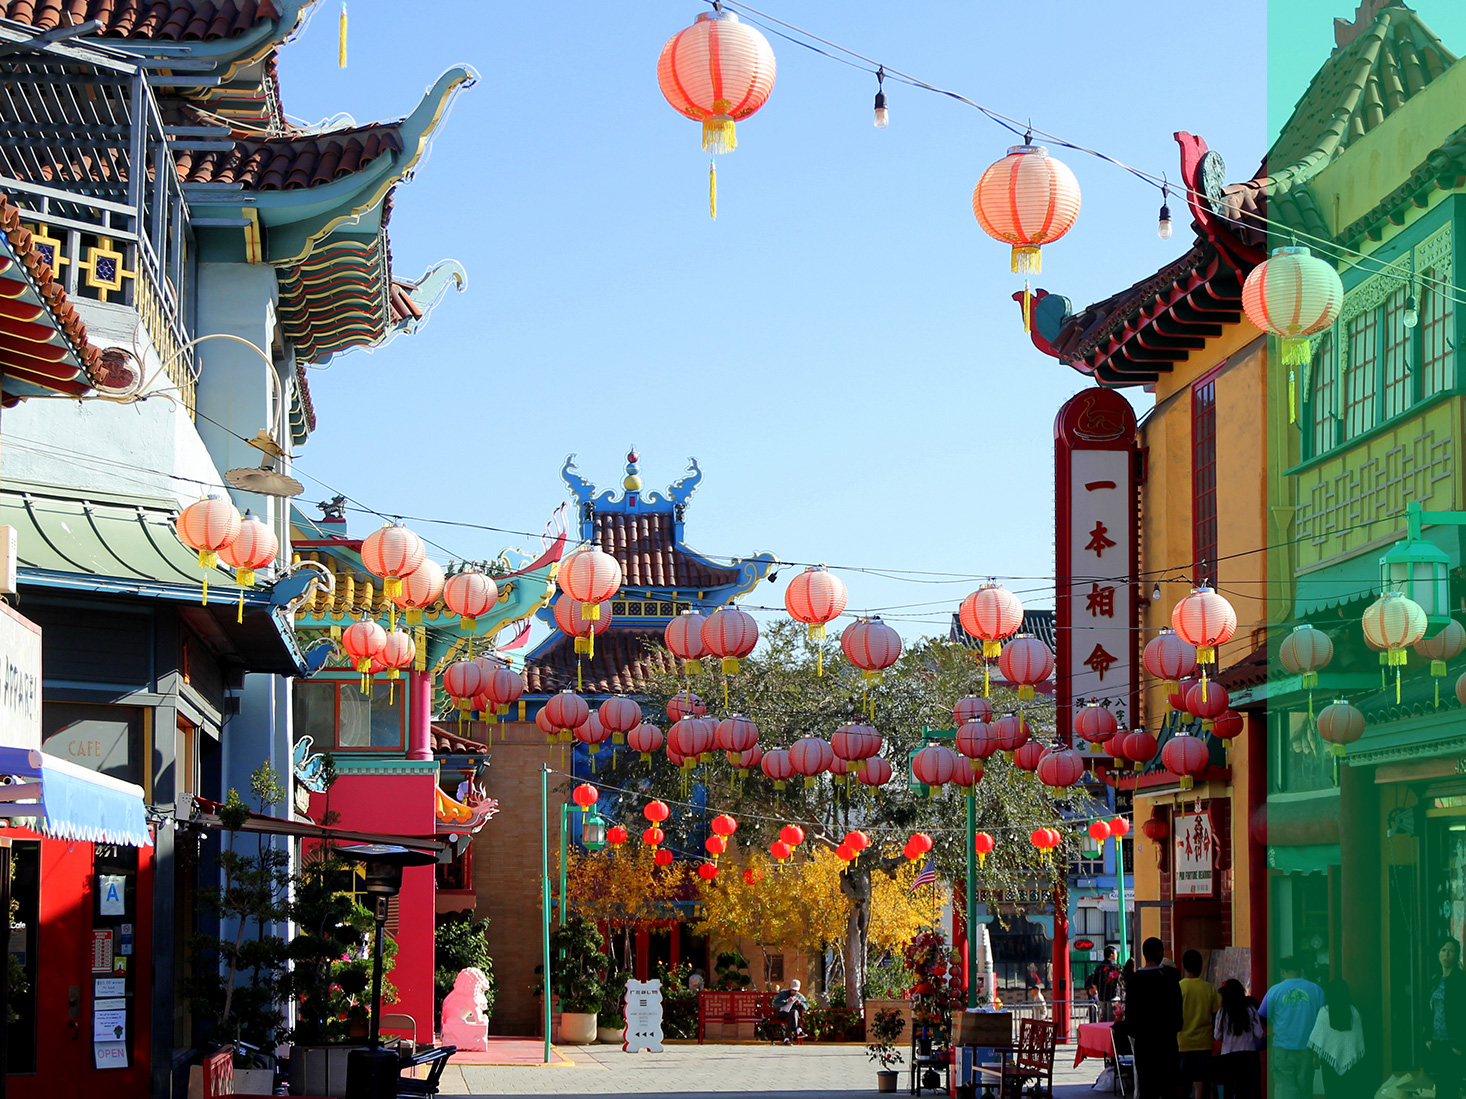 L.A.'s colorful Chinatown pops against bright blue skies.